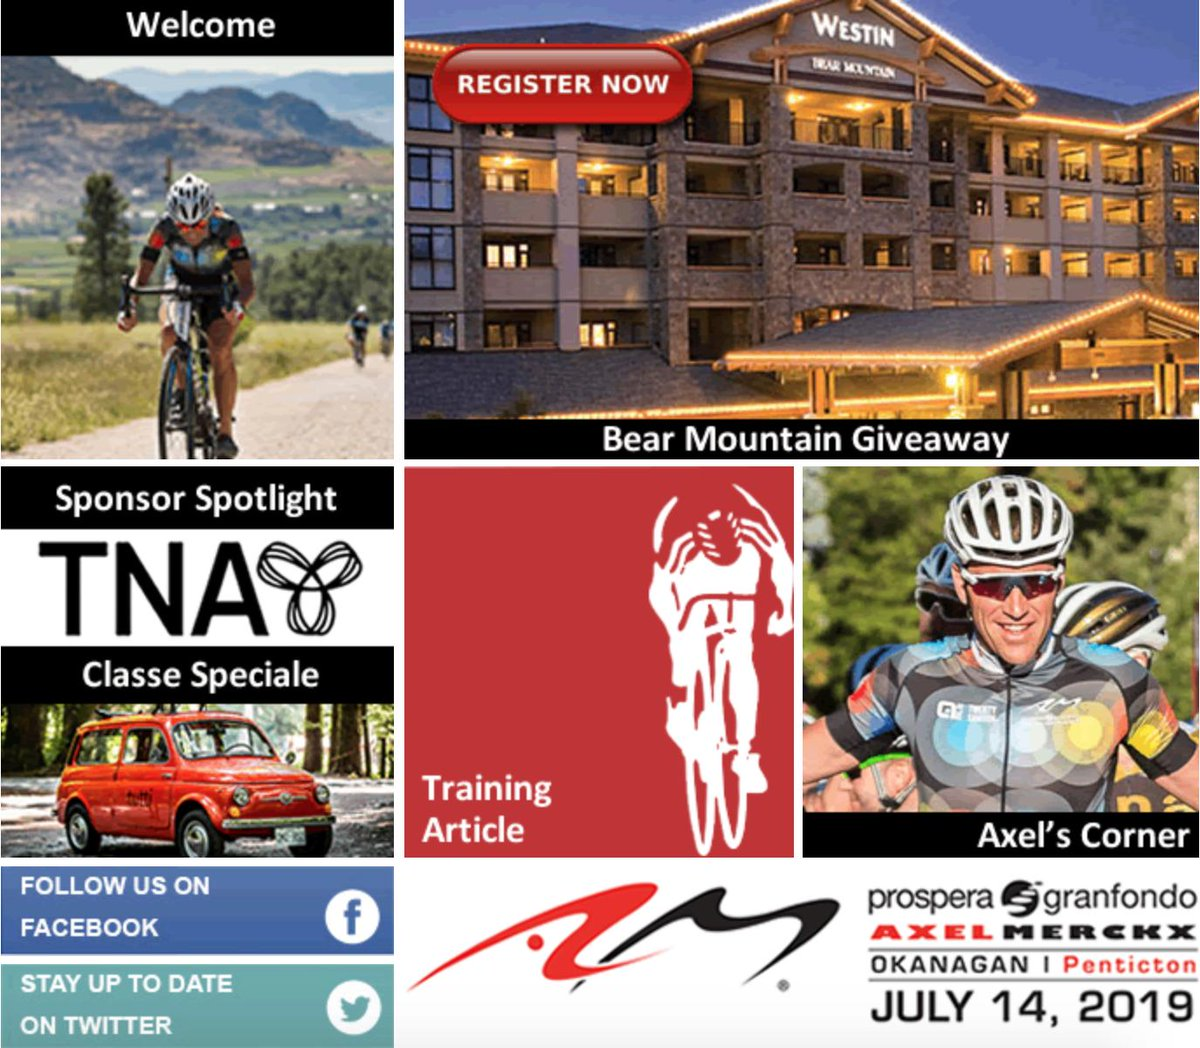 test Twitter Media - March's @axelsgranfondo newsletter is out! Read @axelmerckx's Corner on youth development, a training article from @TrainingPeaks & info on the @treebrewing Training Ride. PLUS, our @BearMountain giveaway (register by TOMORROW!). https://t.co/ouoP7Izq06 @ProsperaCU @TNA_Racing https://t.co/13I5ExncrY